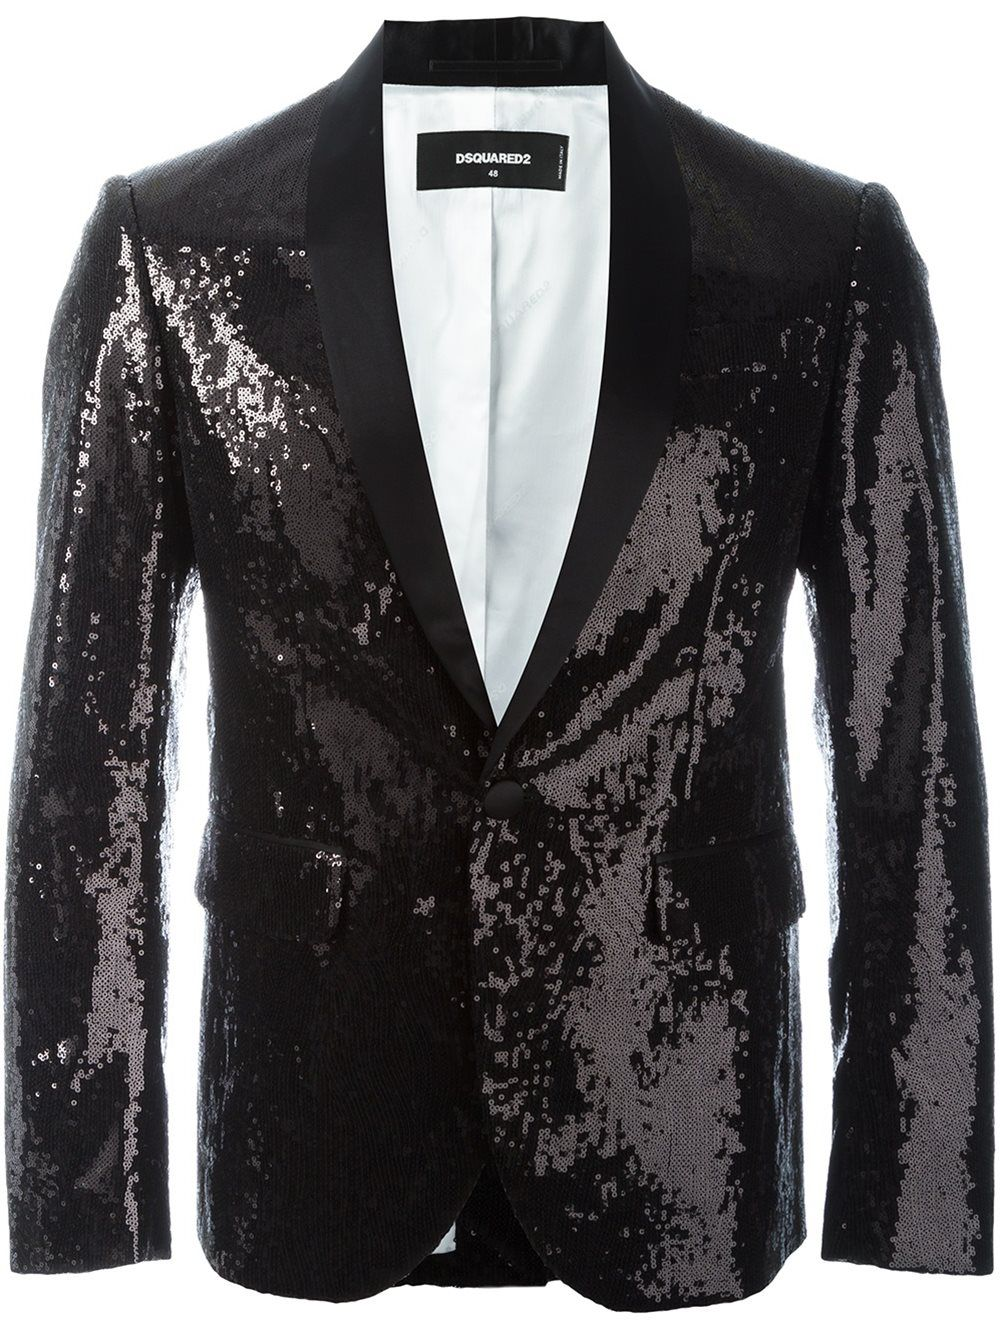 Suit Sequined Sequined Jacket Dsquared2 Jacket Dsquared2 Dsquared2 Suit w5qvYxTW